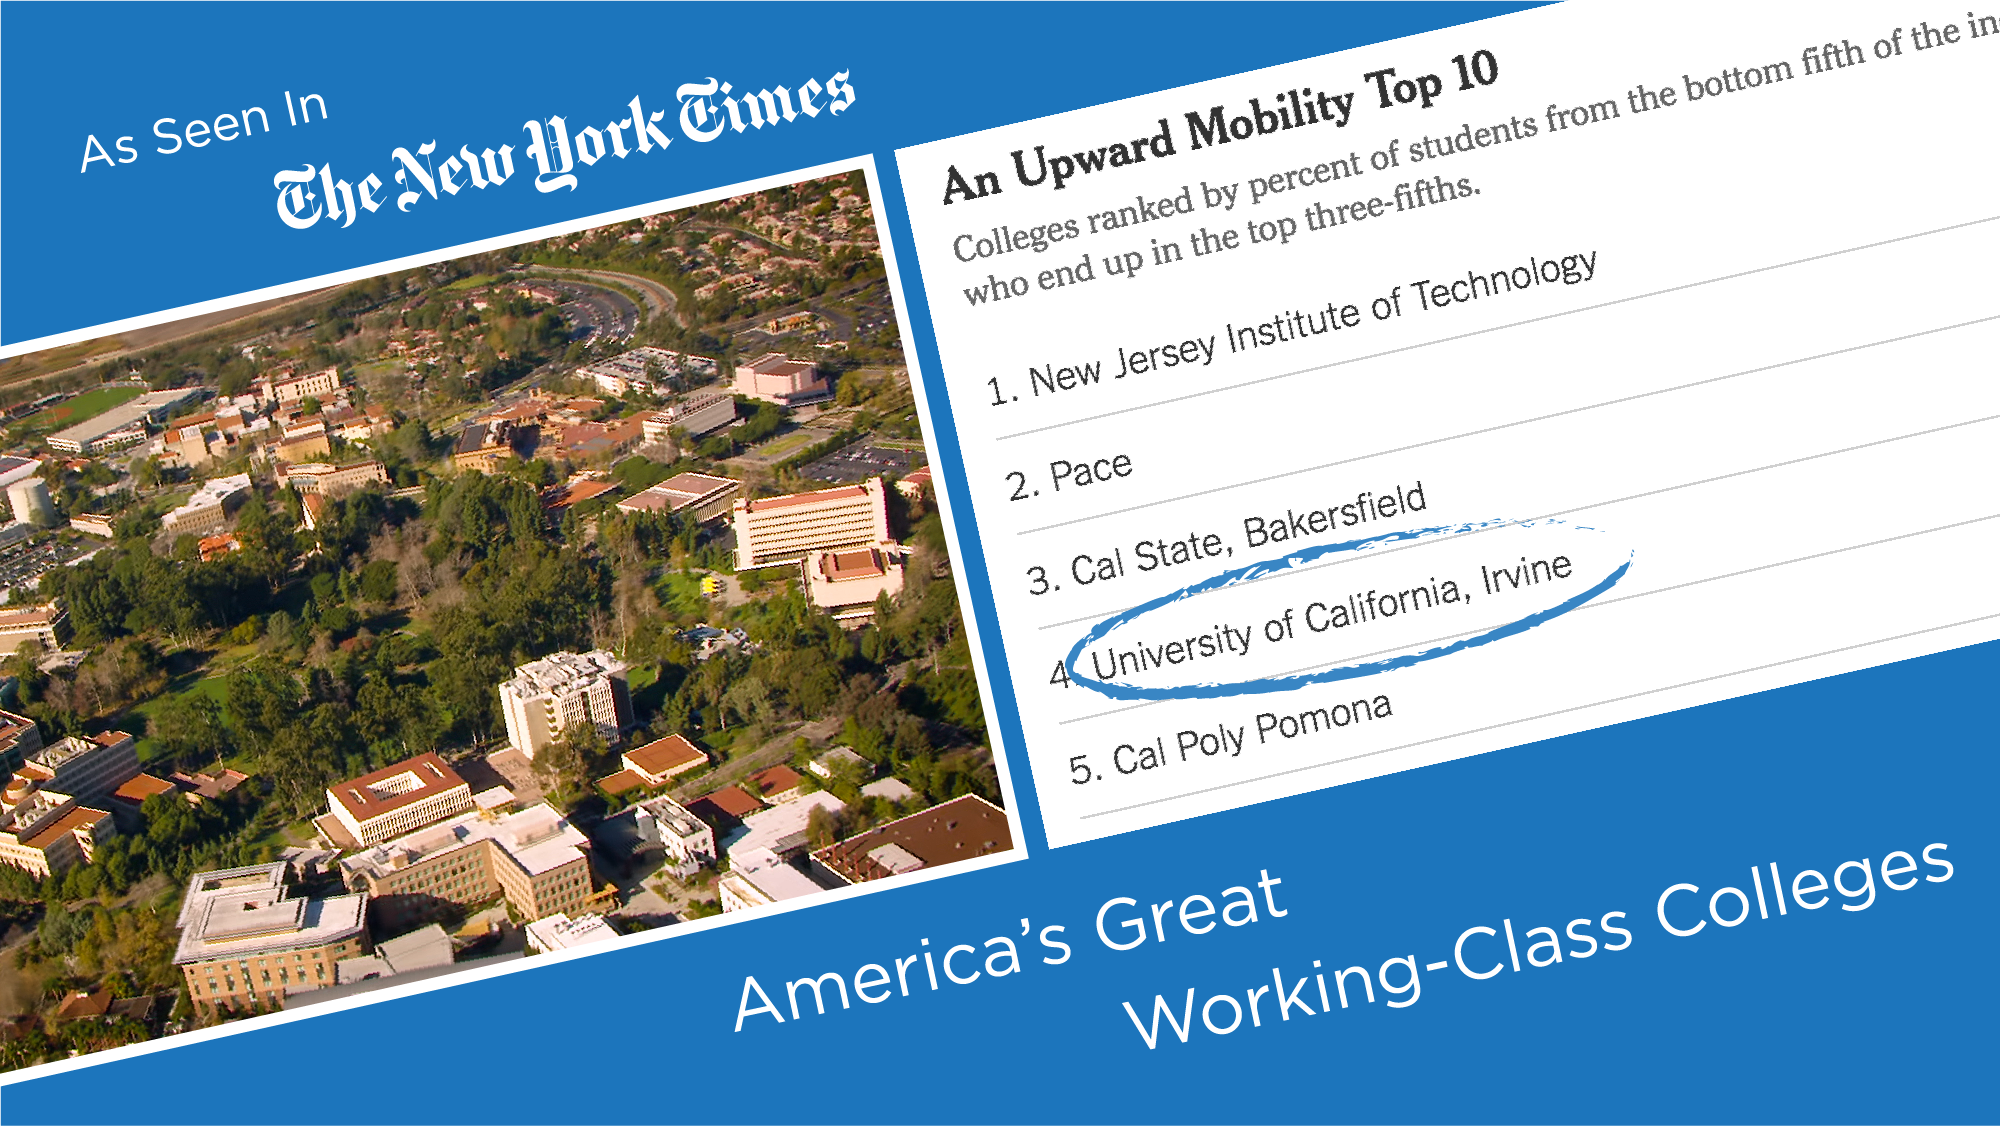 New york times article is ranking uci as 4 in upward mobility with 81 of students from the bottom fifth of the income distribution ending up in the top